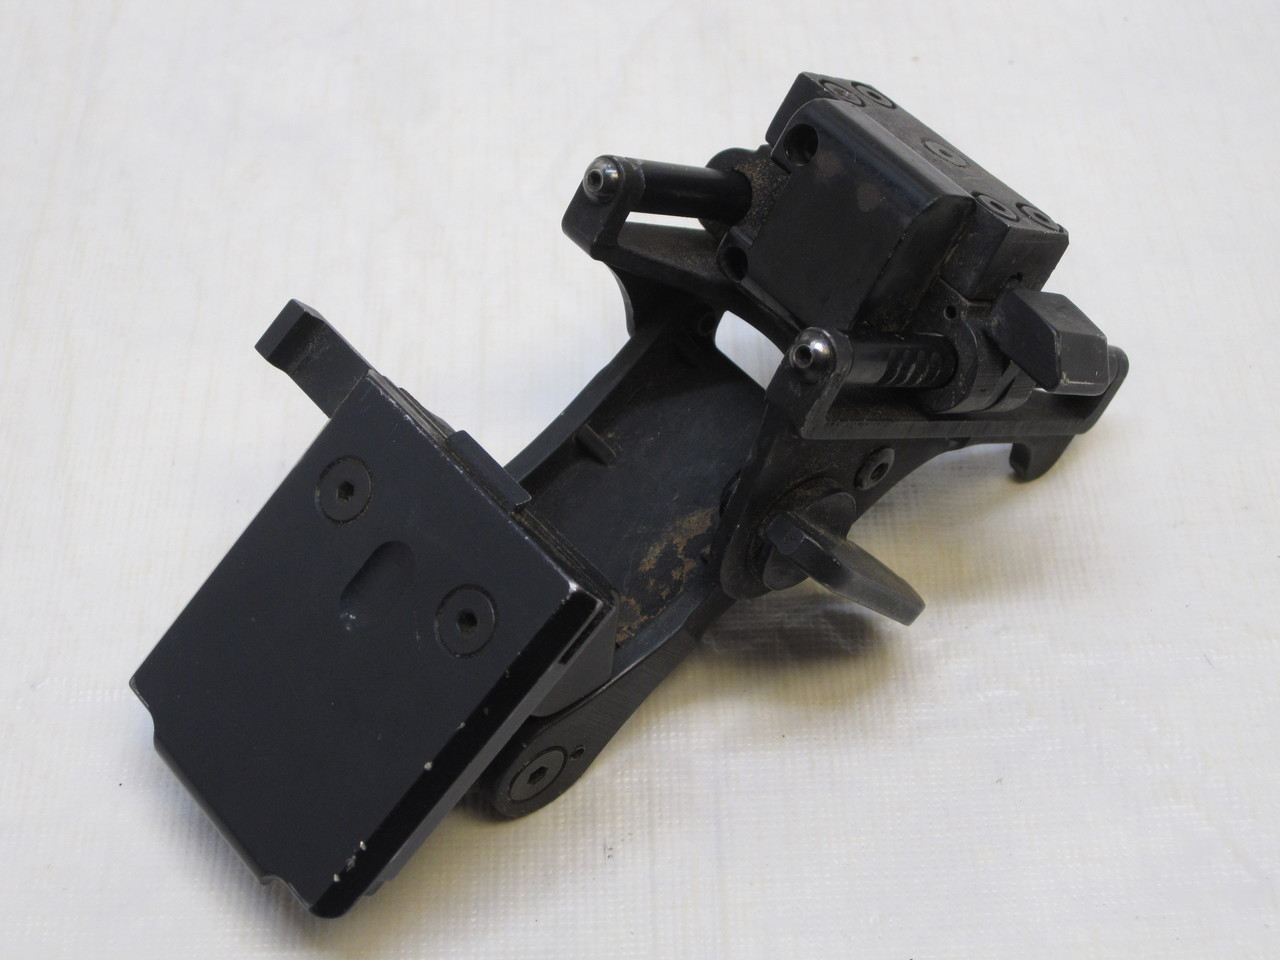 BLACK NOROTOS RHINO NVG HELMET MOUNT PVS 7/14 DROP LEVER A3256368 NIGHT VISION